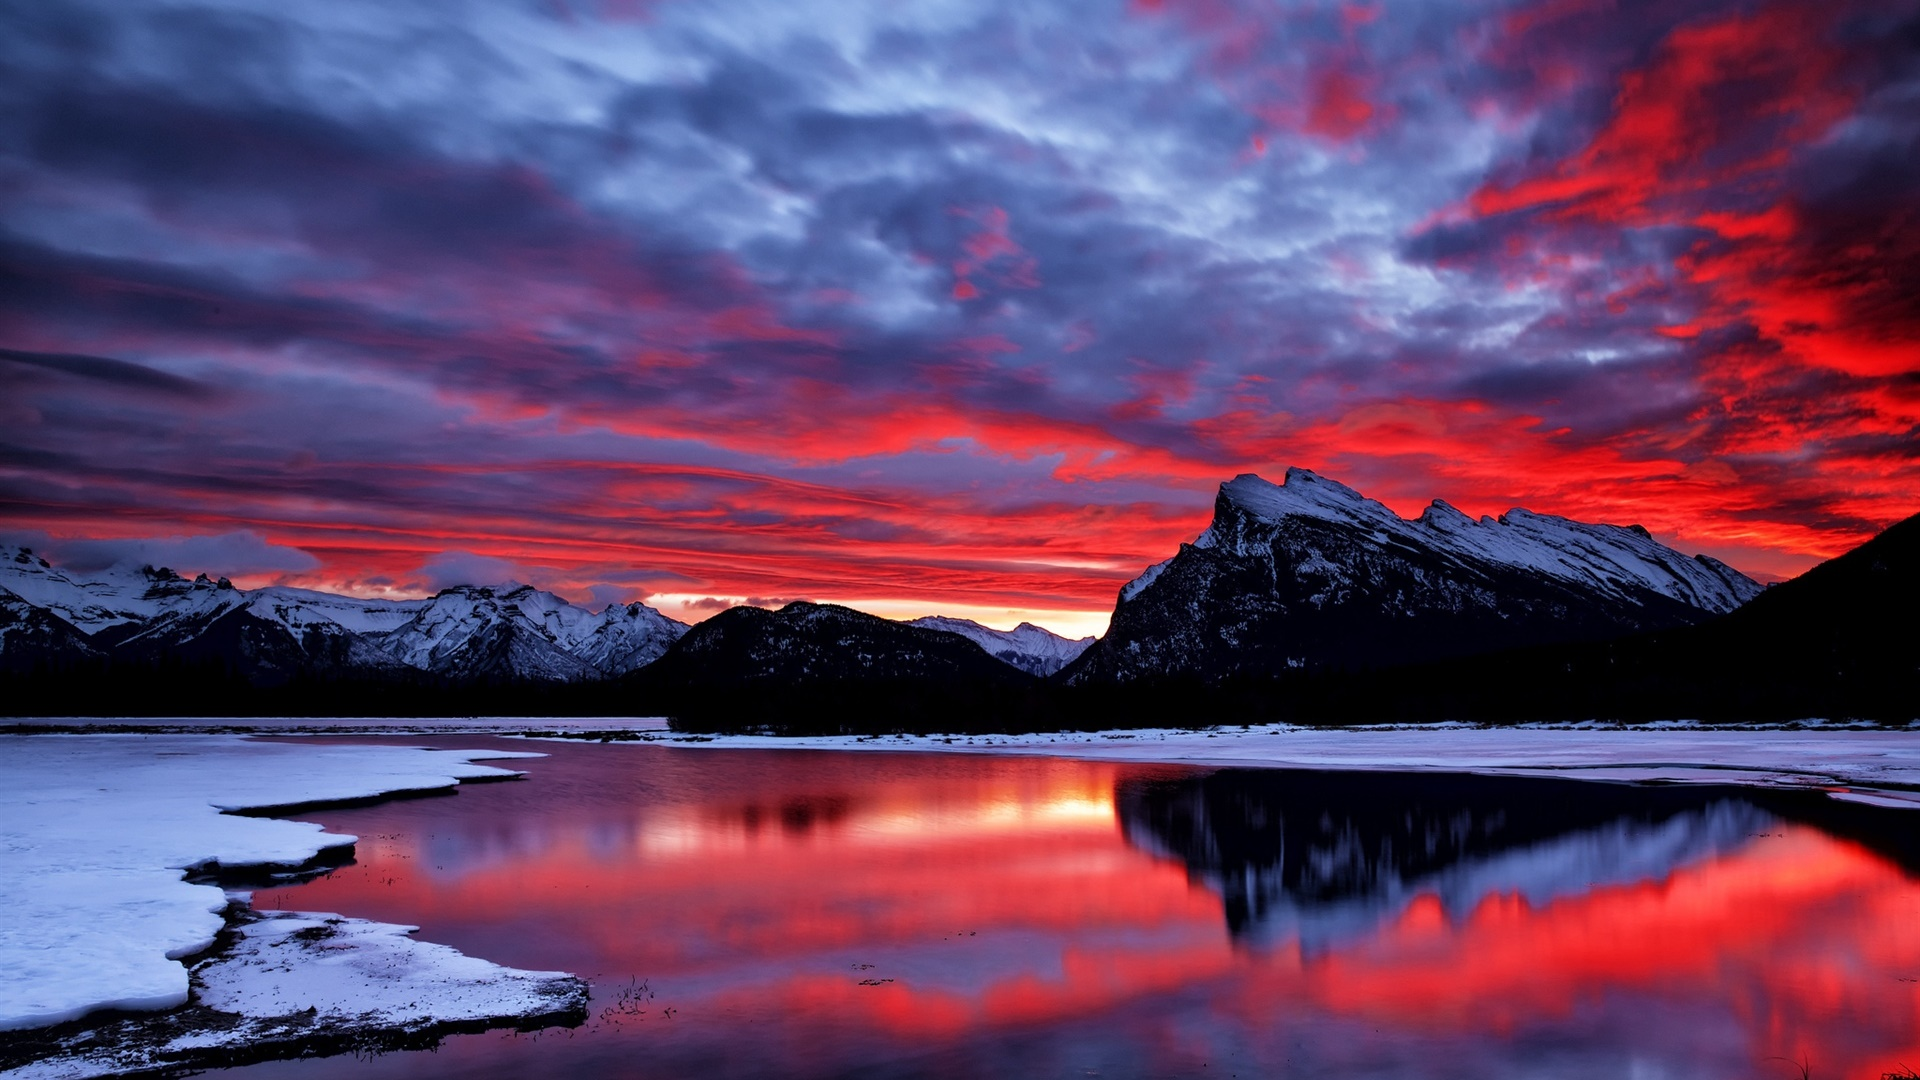 Red Sky Clouds Glow Sunset Mountain Lake Snow Winter